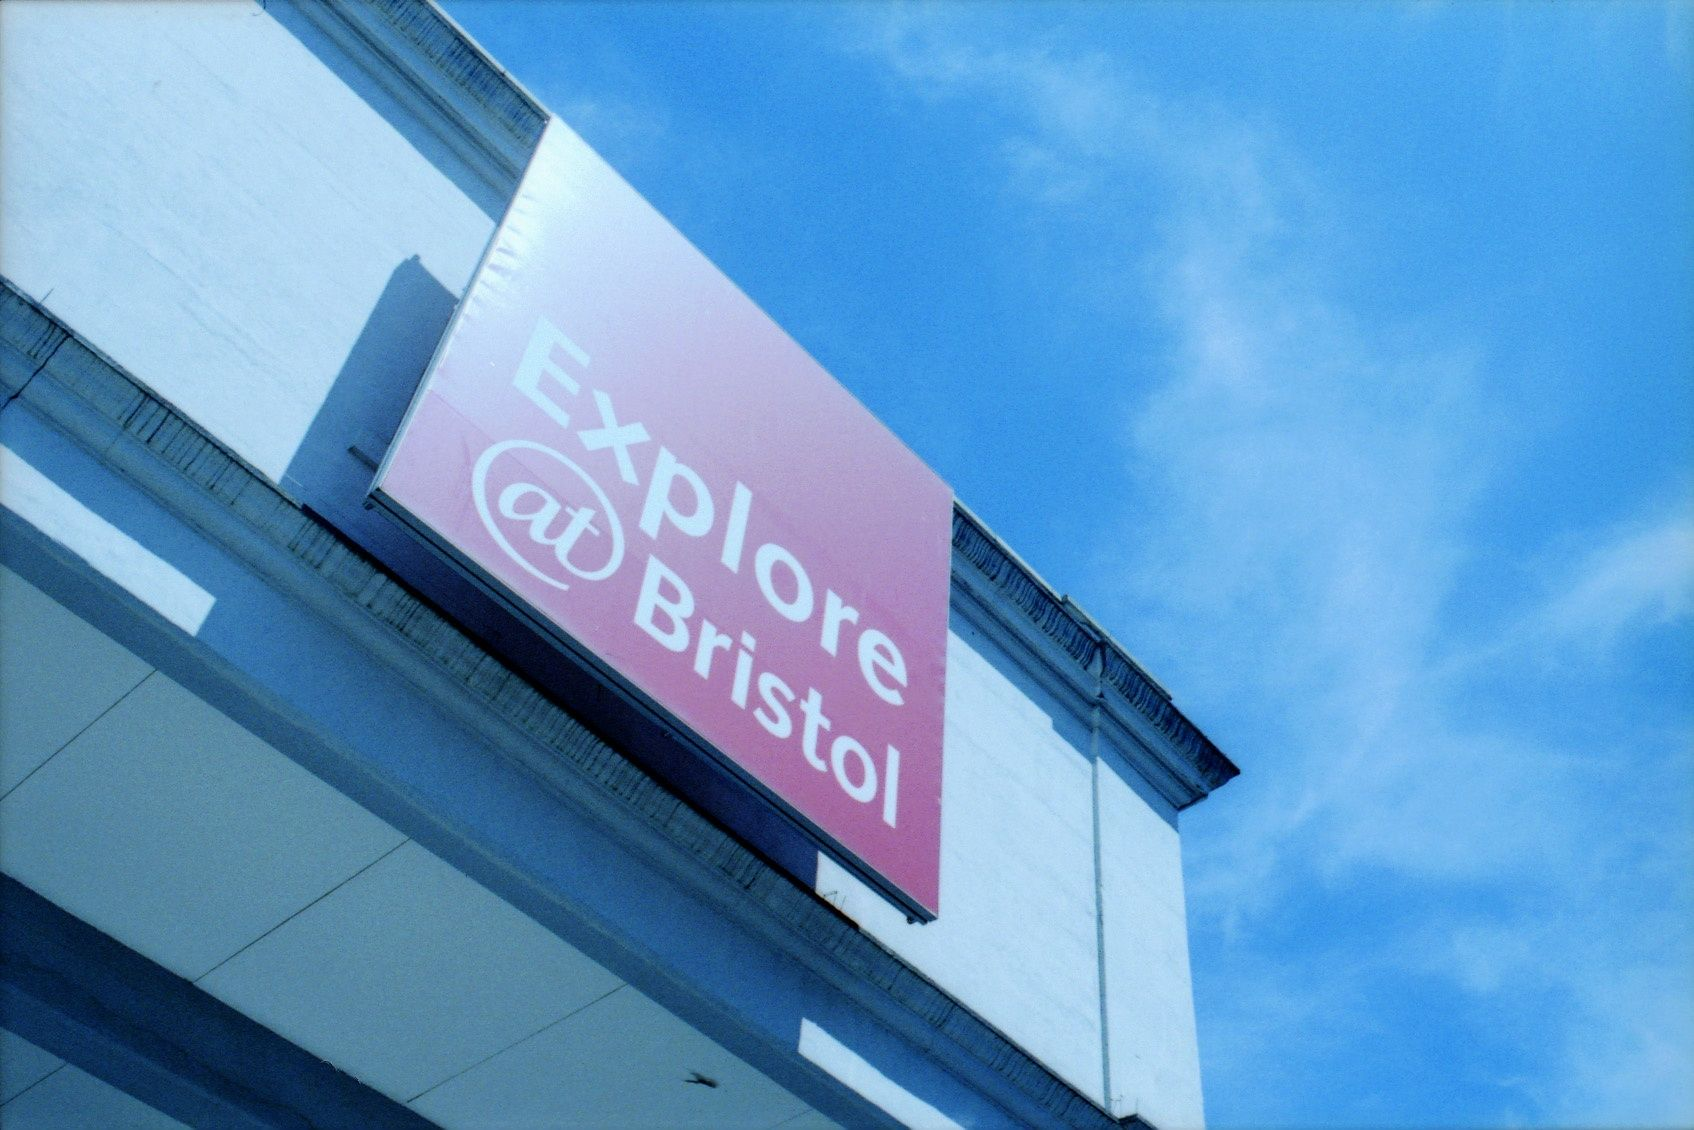 SIGHTS. Explore-at-bristol. On Bristol's revived harbourside is one of the country's leading science centres, Explore-At-Bristol. It's crammed with hundreds of hands-on exhibits demonstrating the everyday applications of science, with zones spanning ingenious inventions, optica